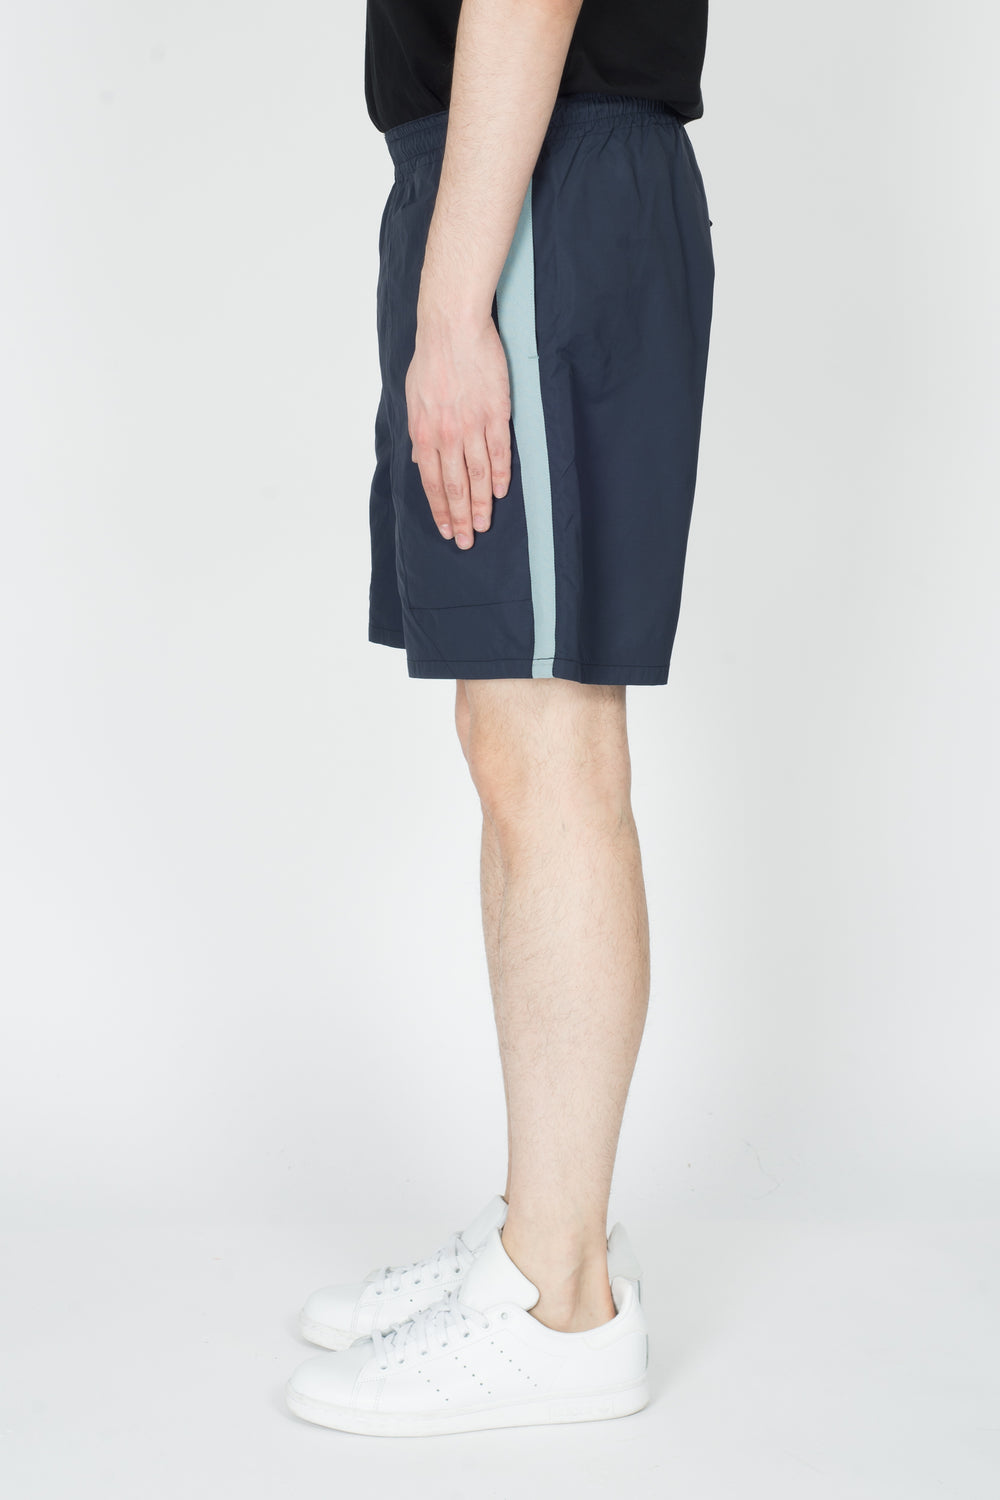 CHILDS Sports Short In Navy